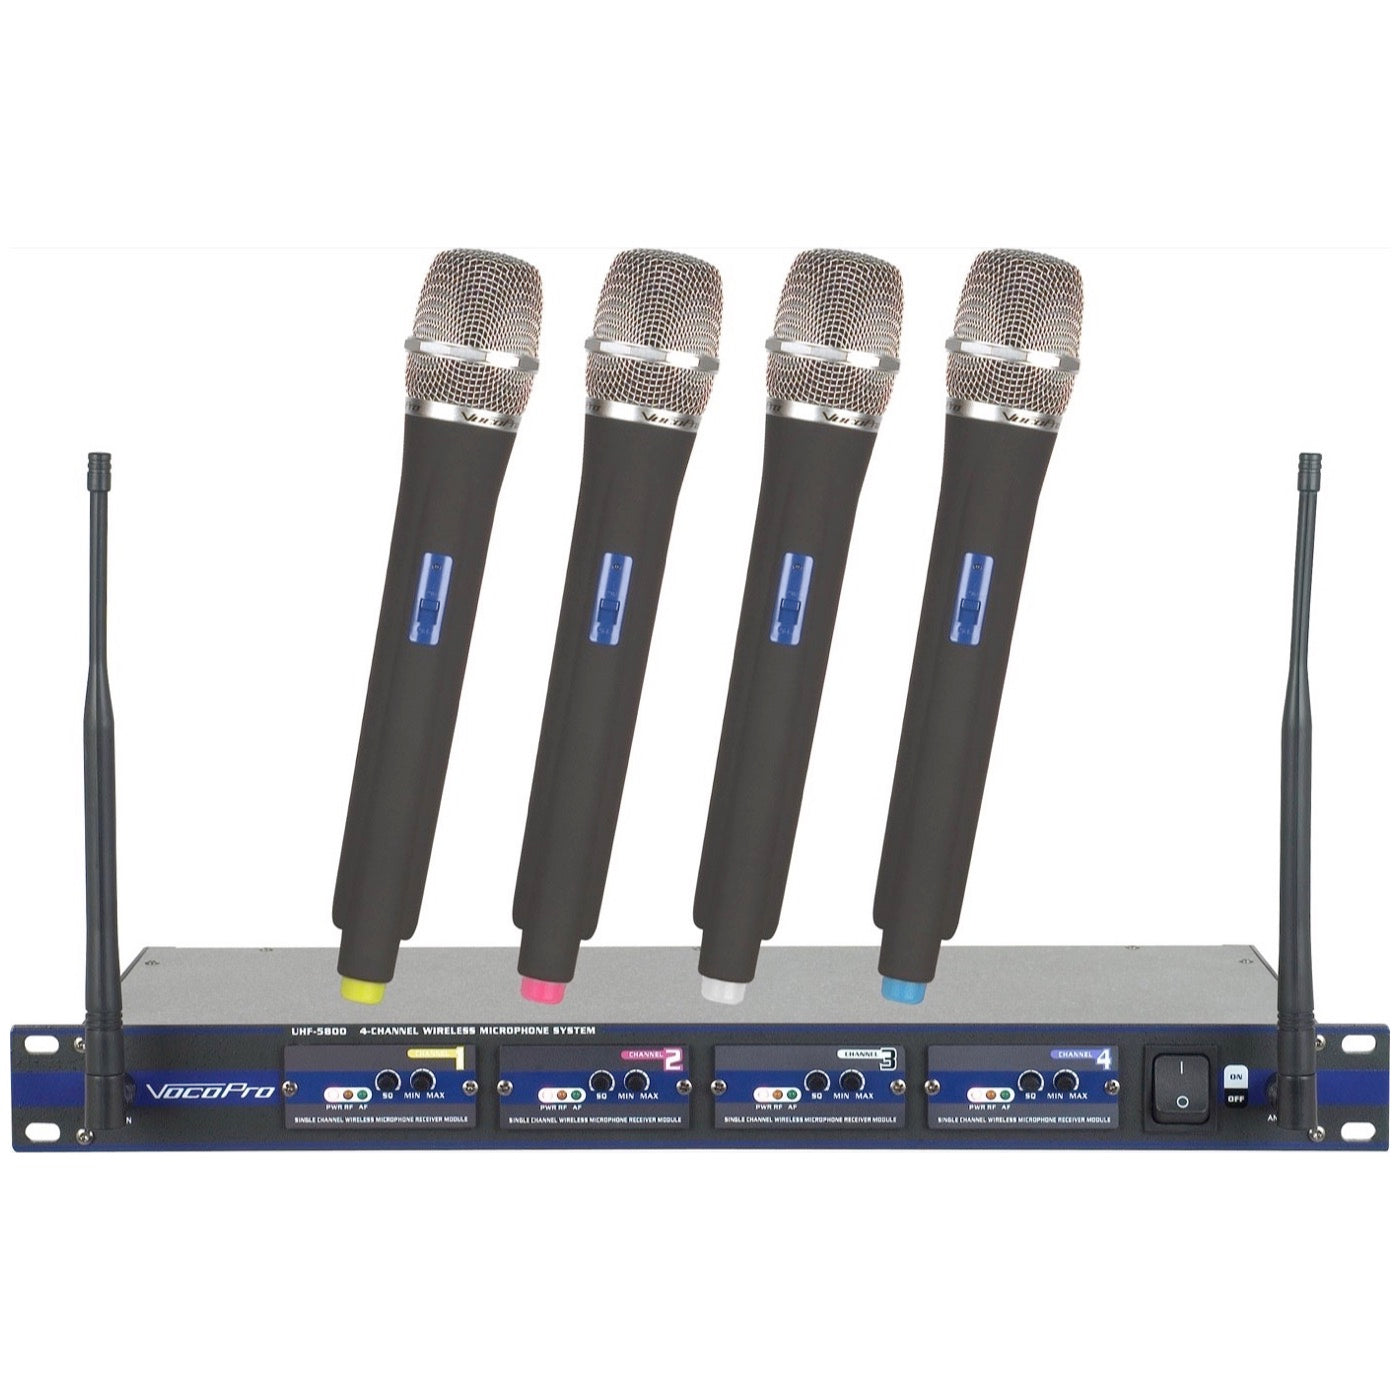 VocoPro UHF-5800 Pack UHF Wireless Microphone System, 4 Microphones (with Gig Bag)